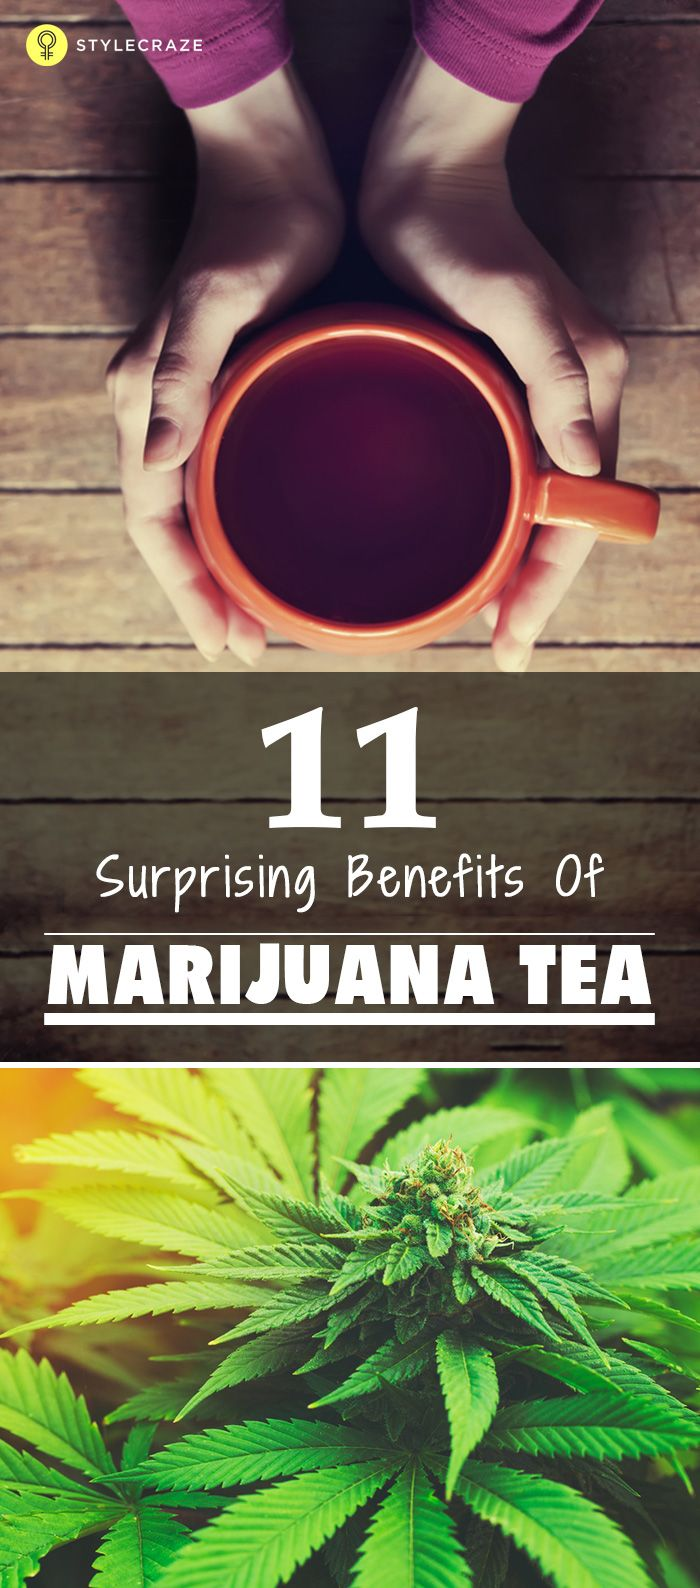 You can store marijuana tea for up to 5 days by refrigerating it. Depending on your preference, you can drink it cold or reheat it before you do. This tea has a taste that is a little peculiar, and you might take some time to get used to it. However, the good news is that you can improve the taste by adding honey, sugar, mint, etc.